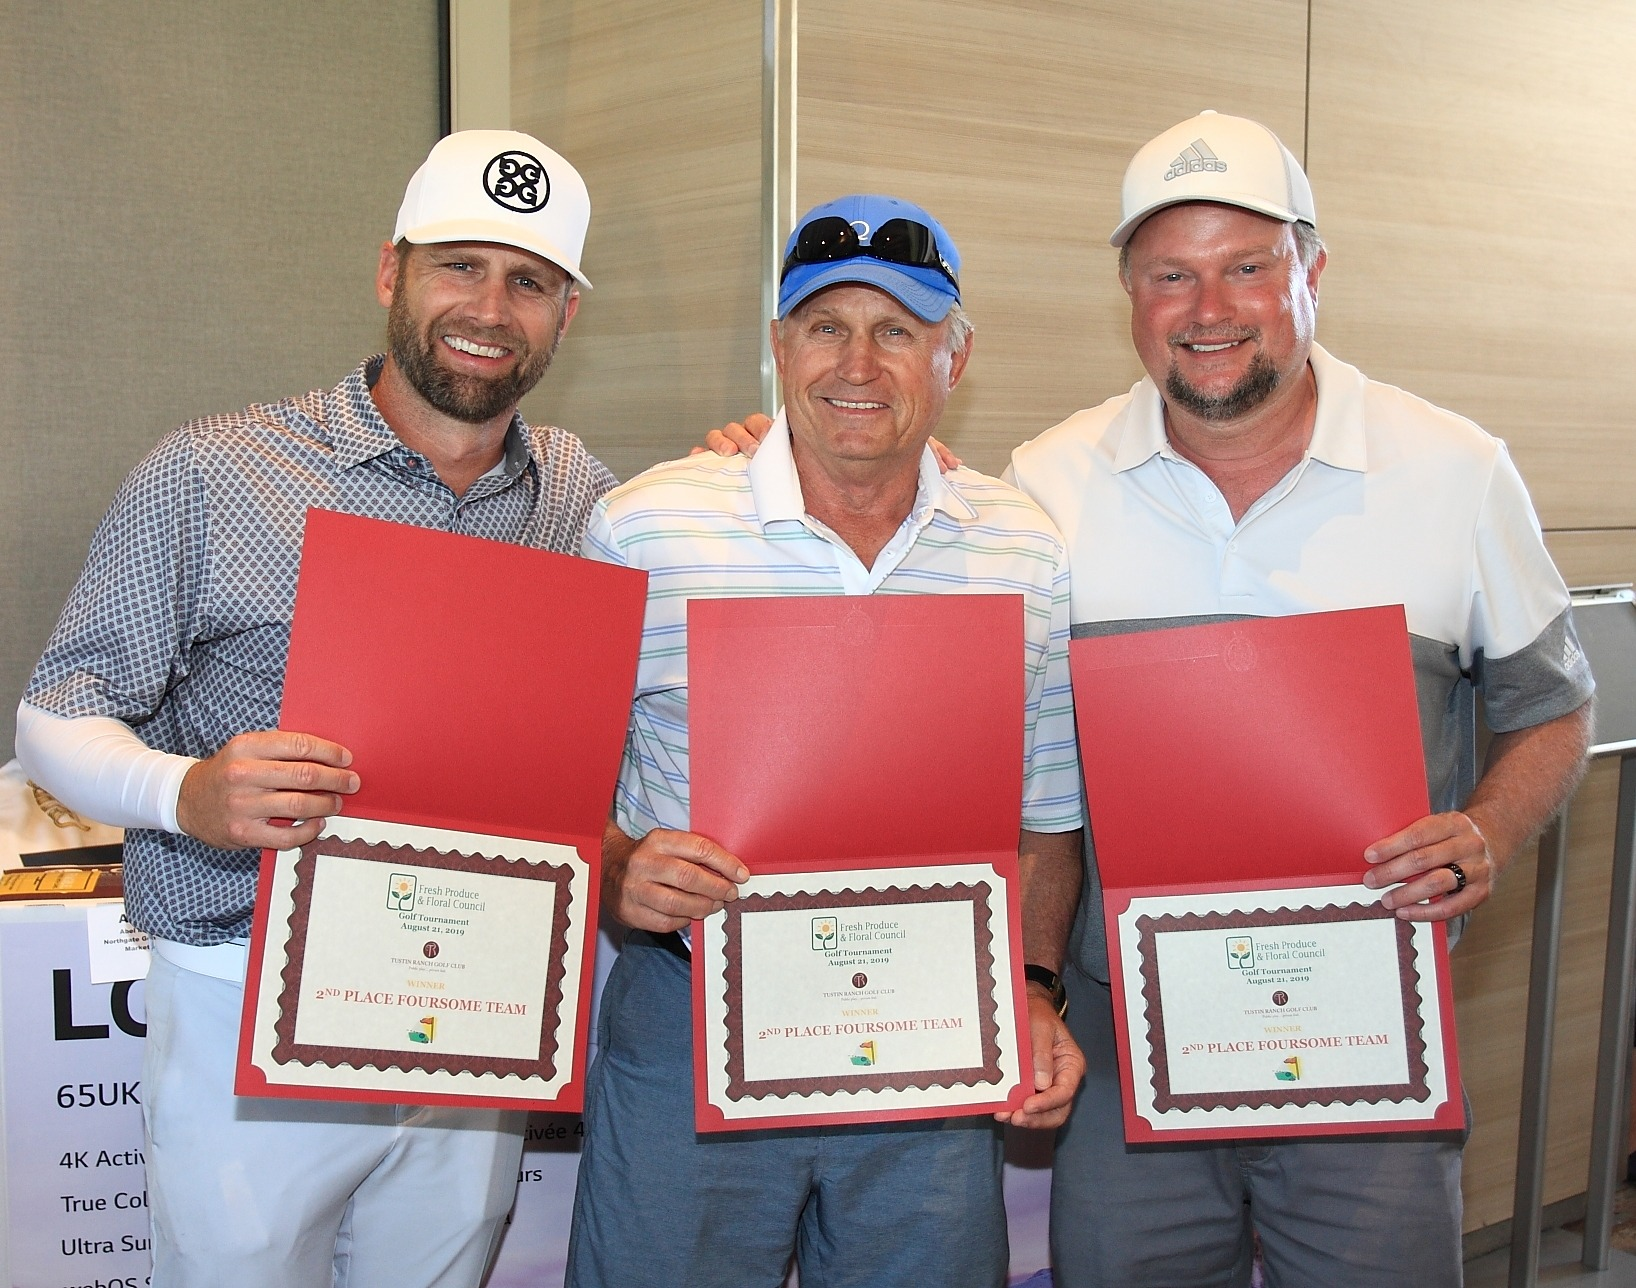 2nd Place Foursome Winners Adam Laliberte, Bill Laliberte and Todd Butler of WJL Distributors. Not Pictured: Shonna Williams, Superior Grocers